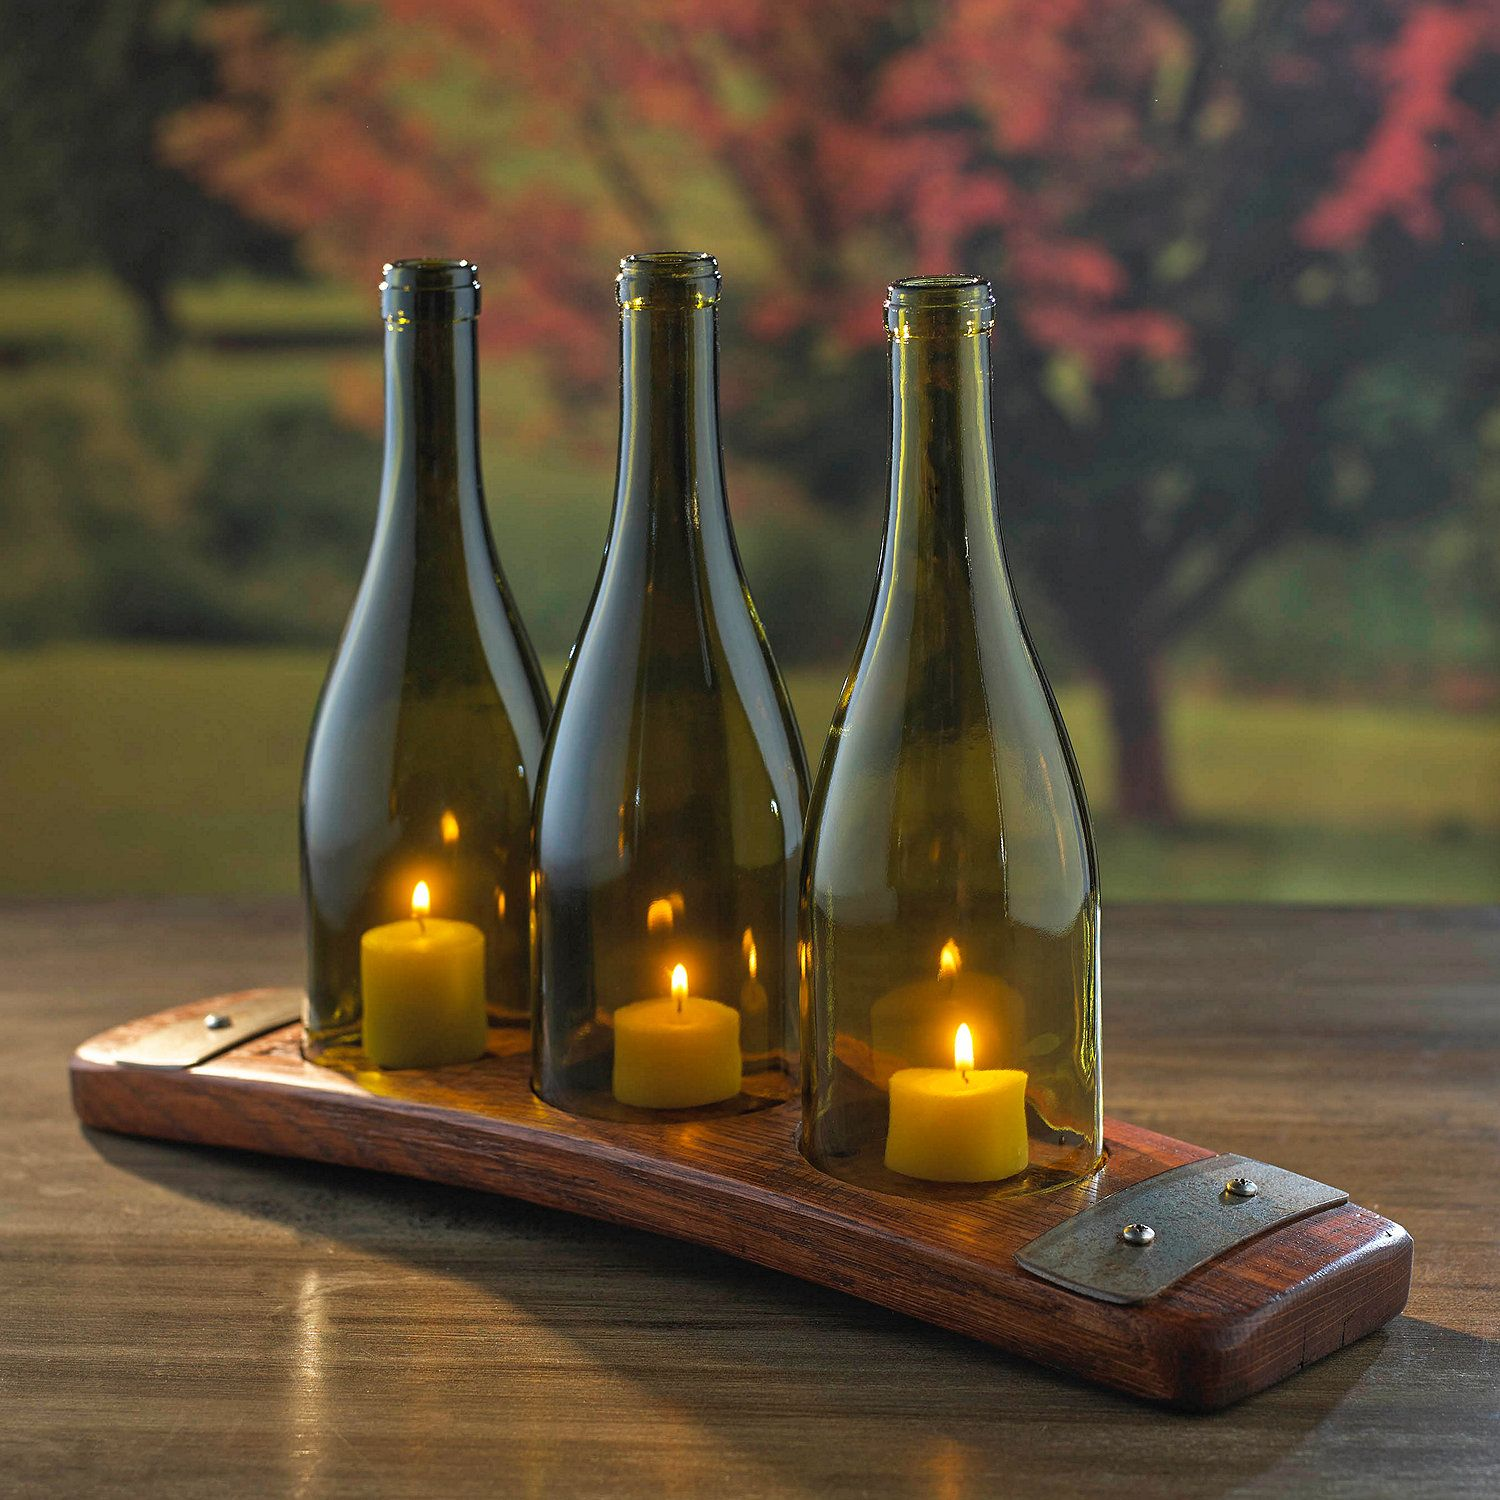 Transforming Wine Bottles Into Candles